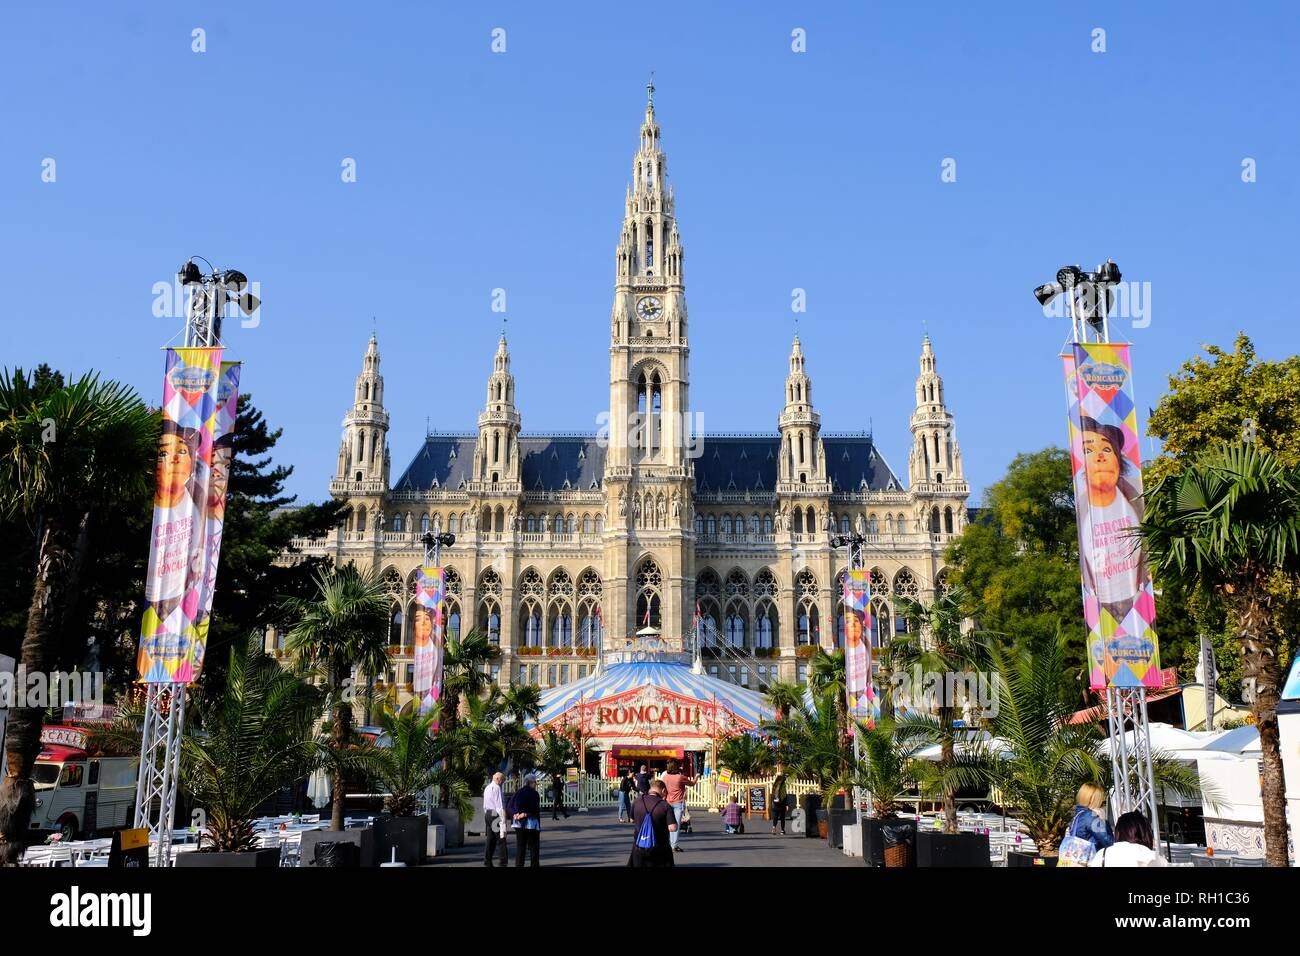 Vienna Old Rathaus, the old Rat House or Town Hall, Austria - Stock Image